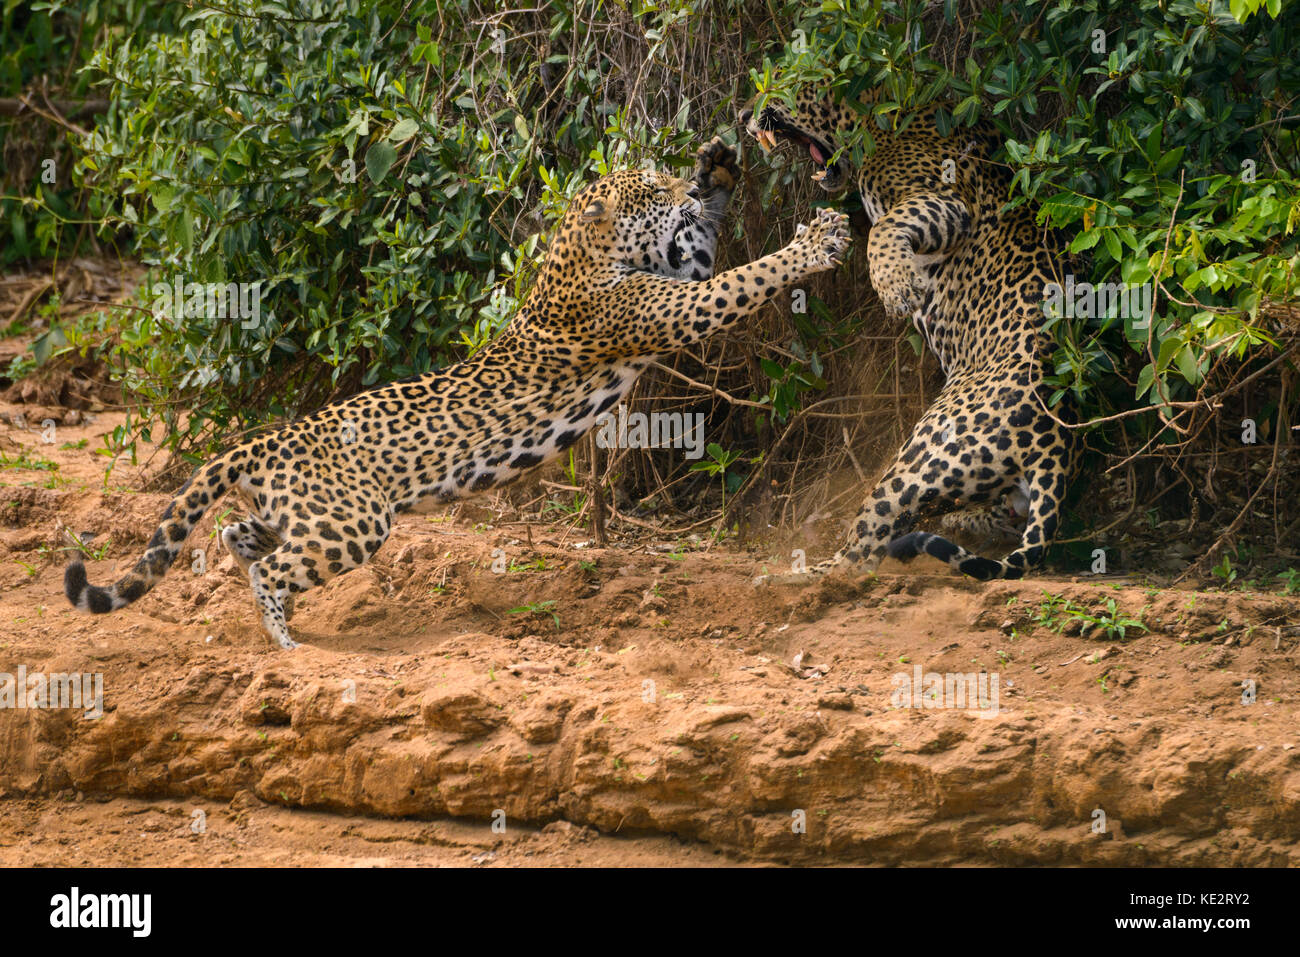 This is part of a sequence of a couple mating Jaguars fighting in the wild. North Pantanal, Brazil. - Stock Image